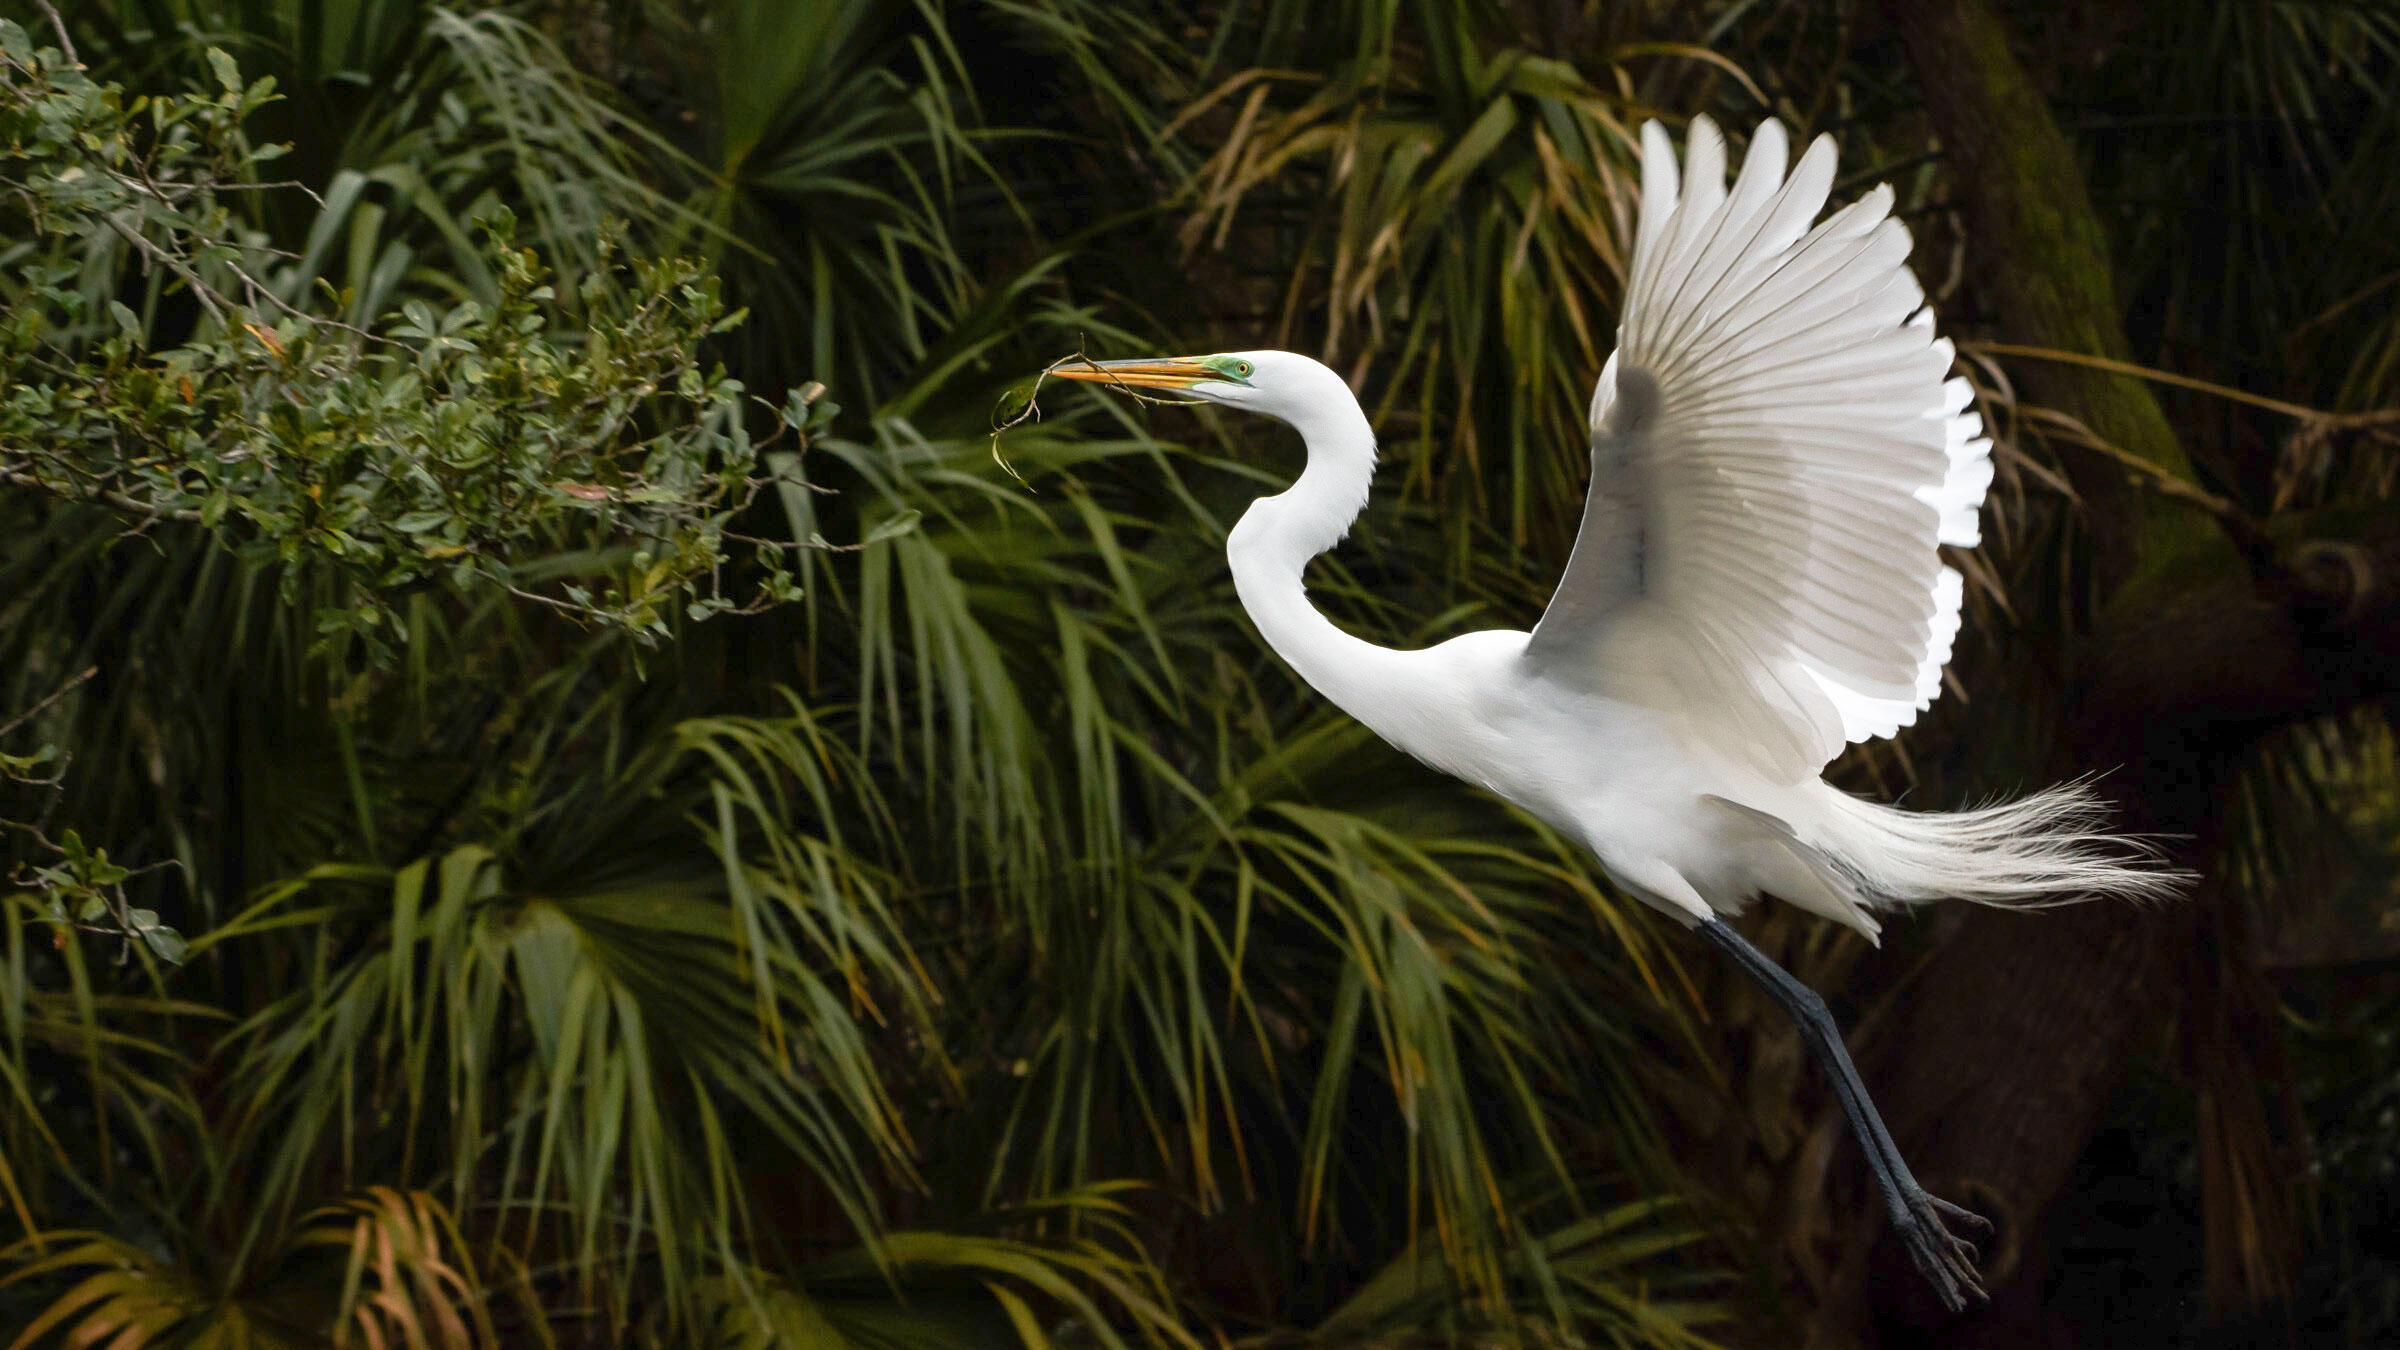 Great Egrets are common now only because grassroots activists urged Congress to pass the Migratory Bird Treaty Act a century ago, saving the regal birds from the plume trade. Trudy Walden/Audubon Photography Awards